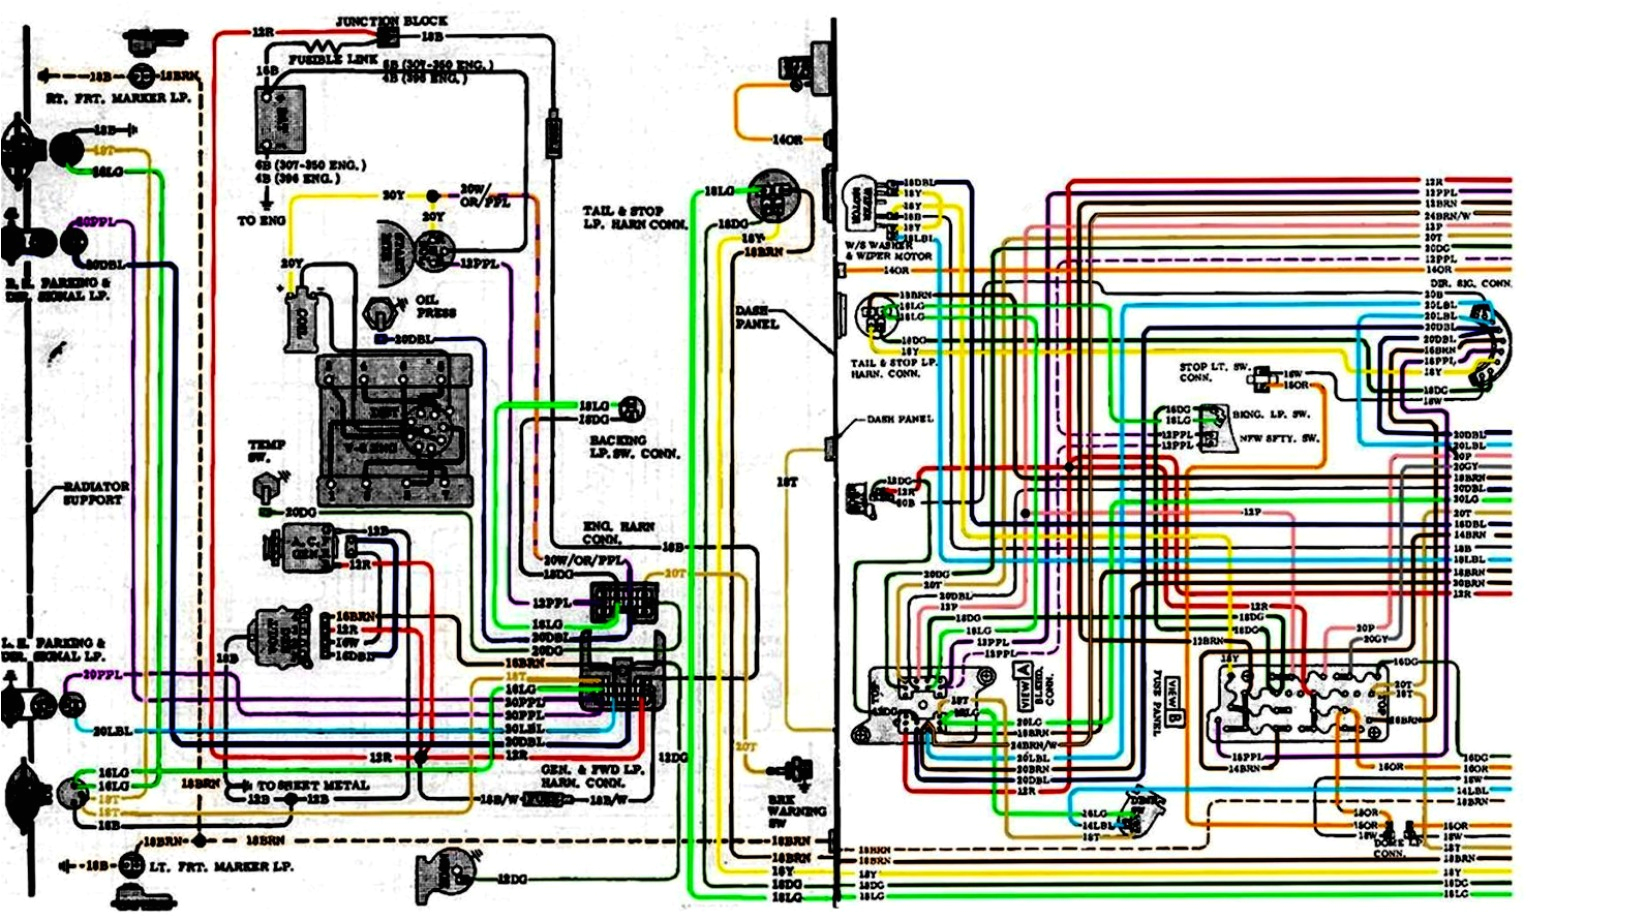 chevy truck engine wiring harness use wiring diagramchevy truck engine wiring harness on wiring harness for